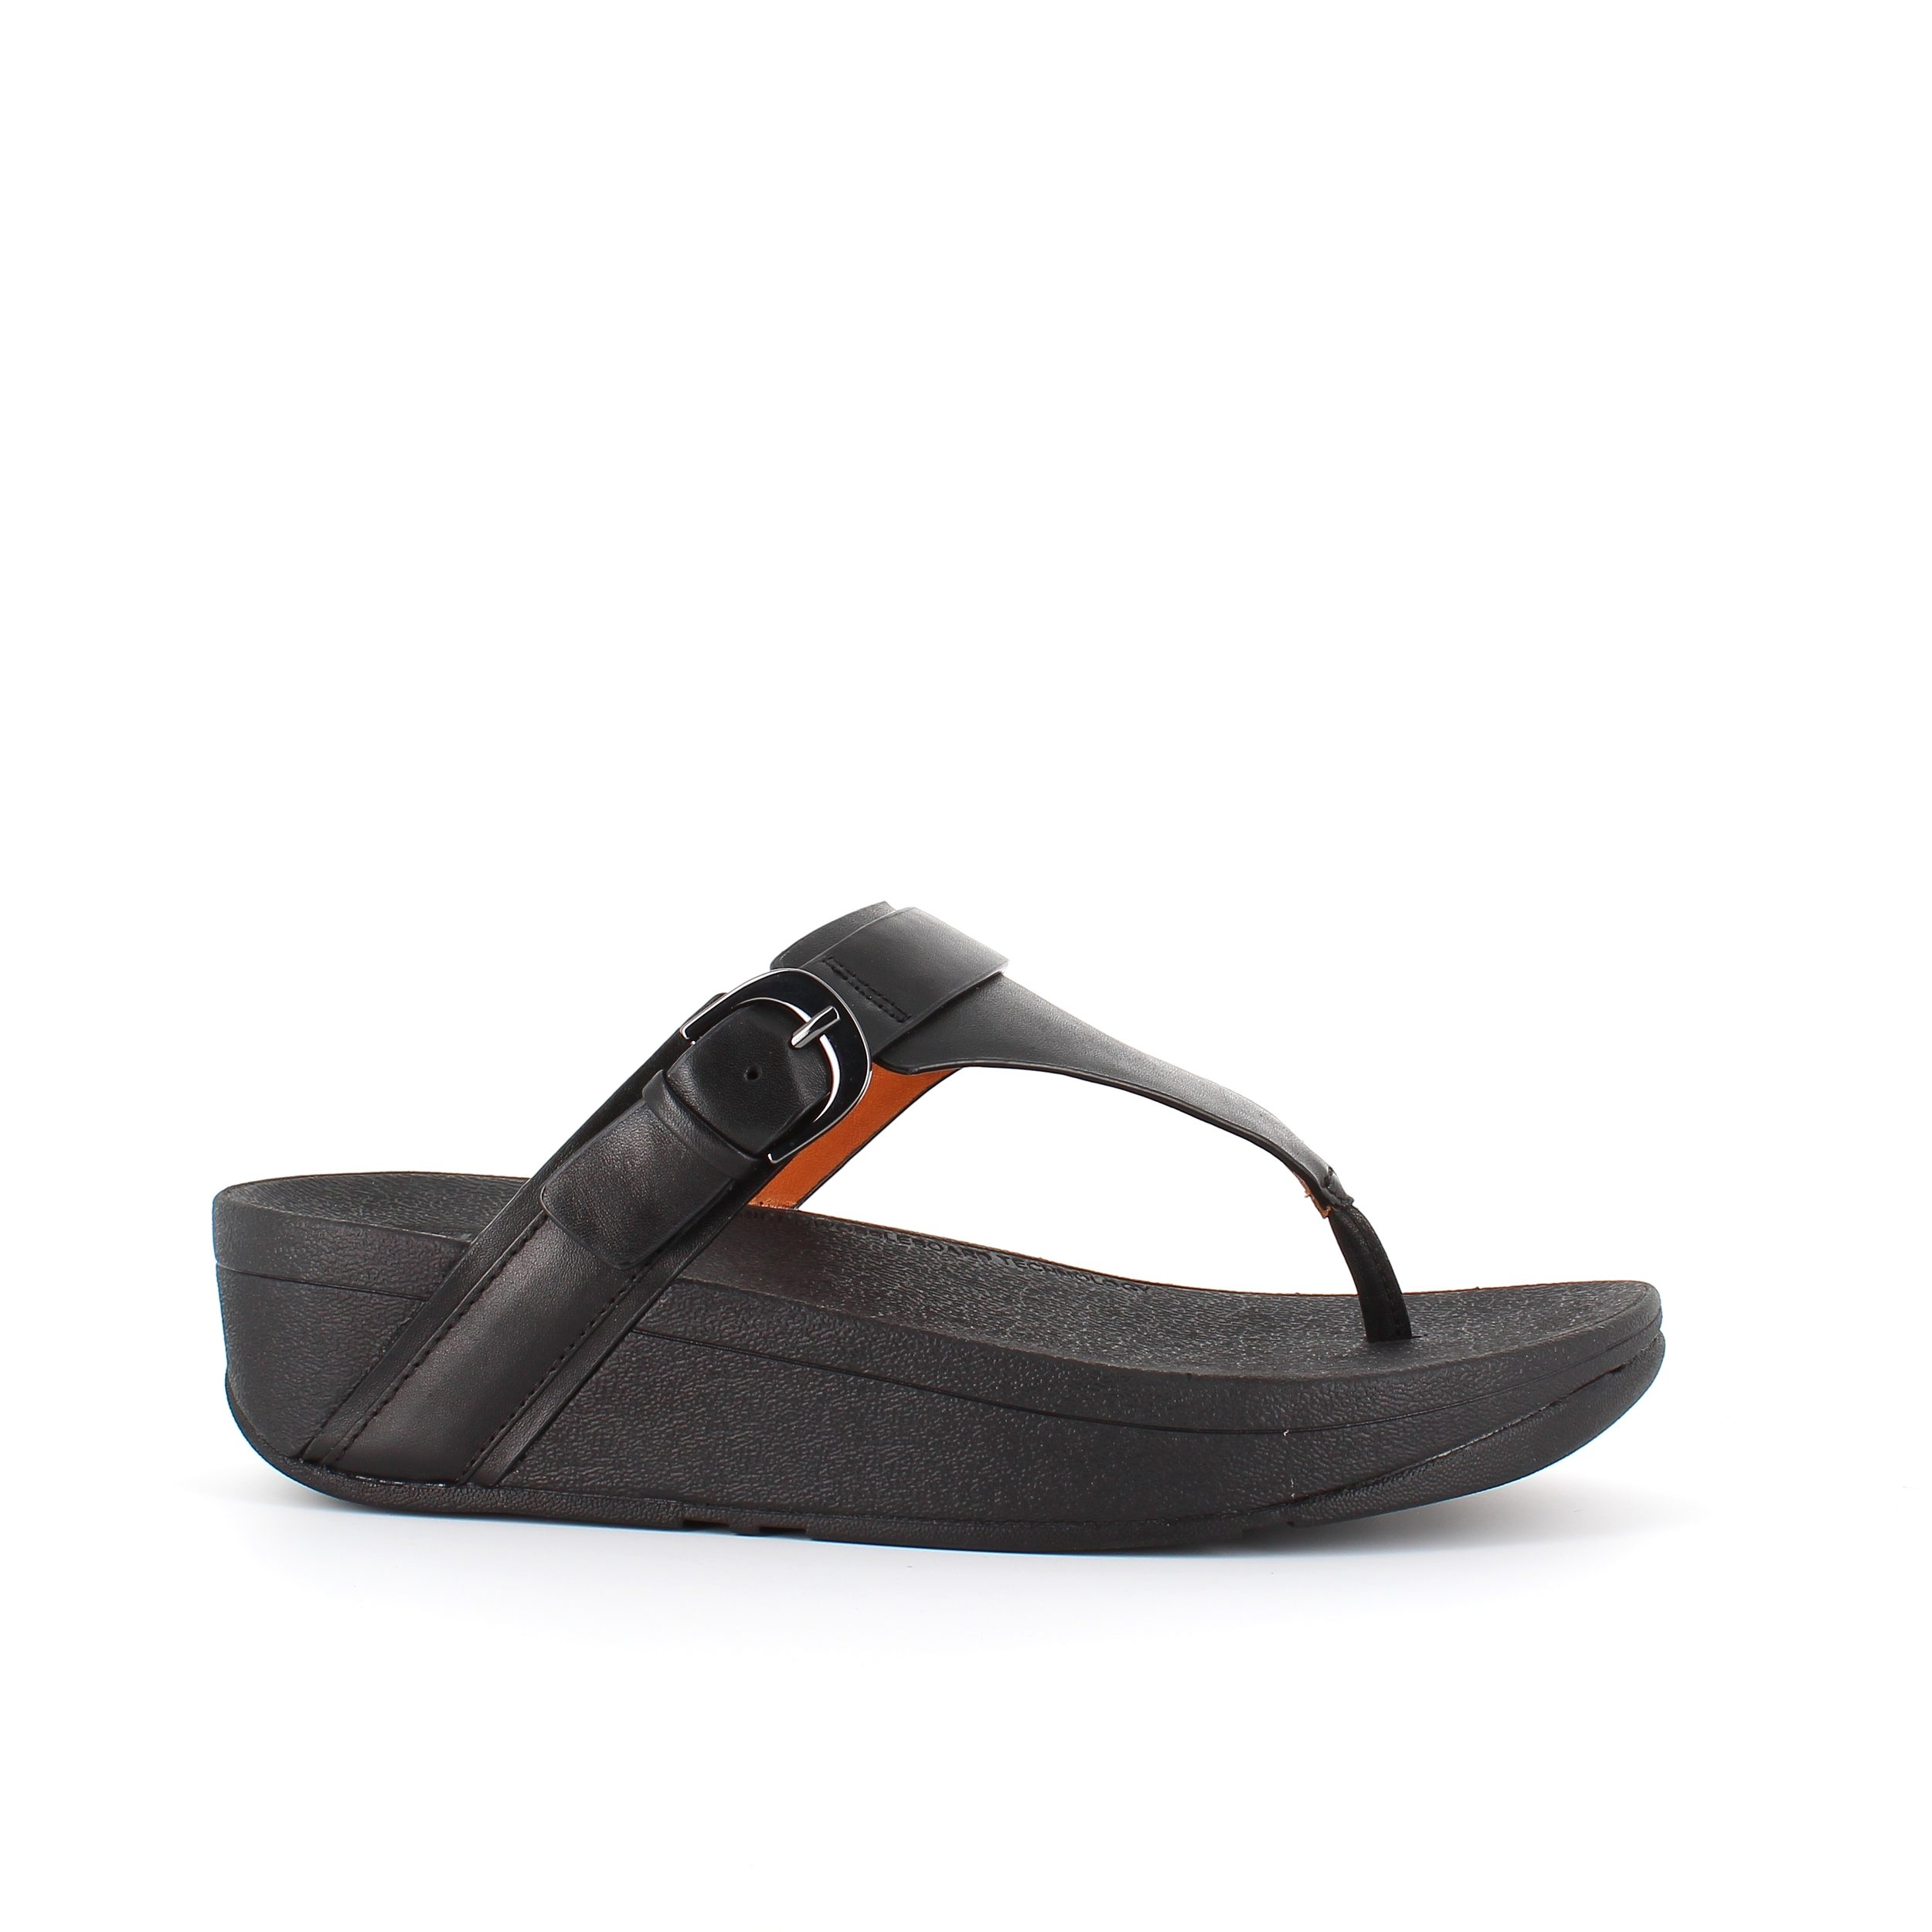 Image of   Edit fitflop sandal i læder - 41